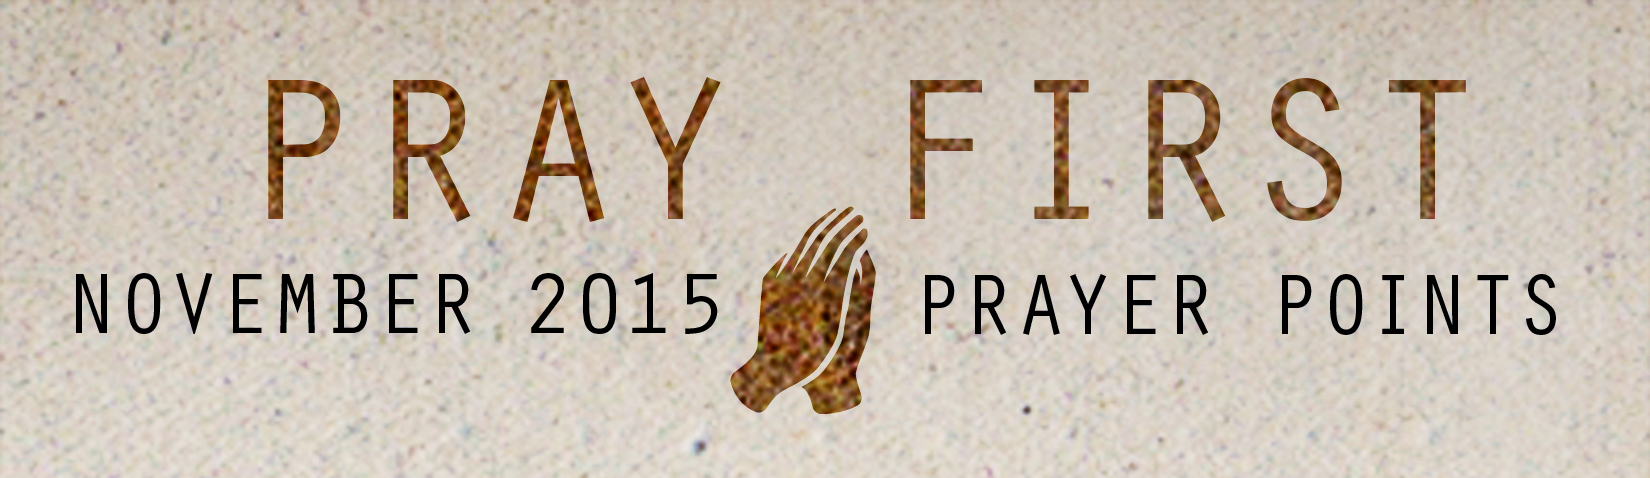 NOVEMBER PRAYER POINTS     Access your copy of the November 2015 Prayer Points  HERE !